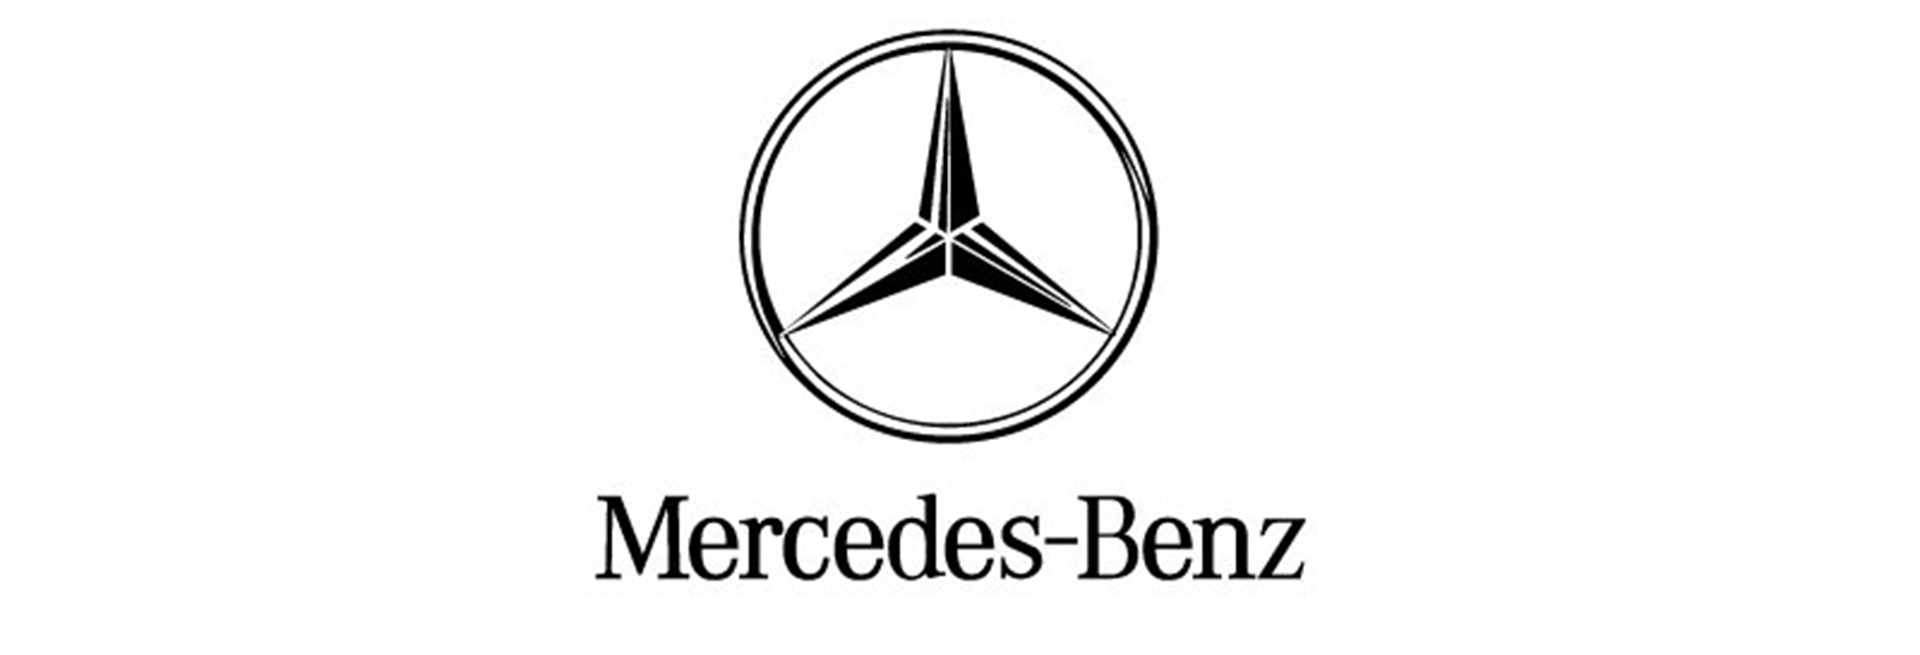 Mercedes Benz Uk Outperforms Tough Markets With Success Across The Board together with 458993 Rack Pinion Removal Excessive Leak also Mercedes c 4 r ft moreover Blu sheet likewise . on mercedes benz a class